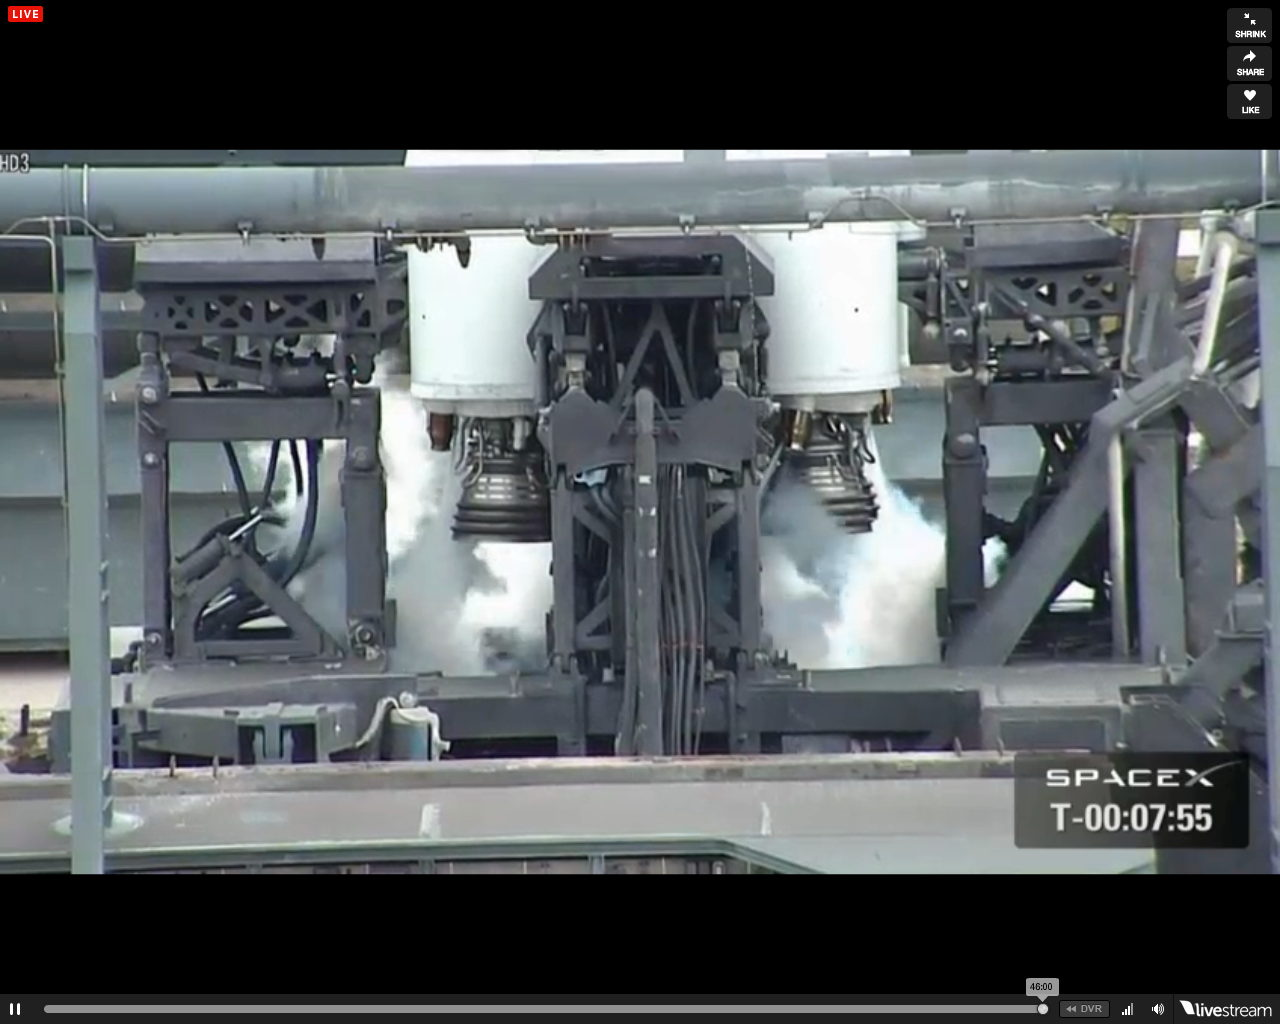 SpaceX's Falcon 9 Engines Venting Prelaunch